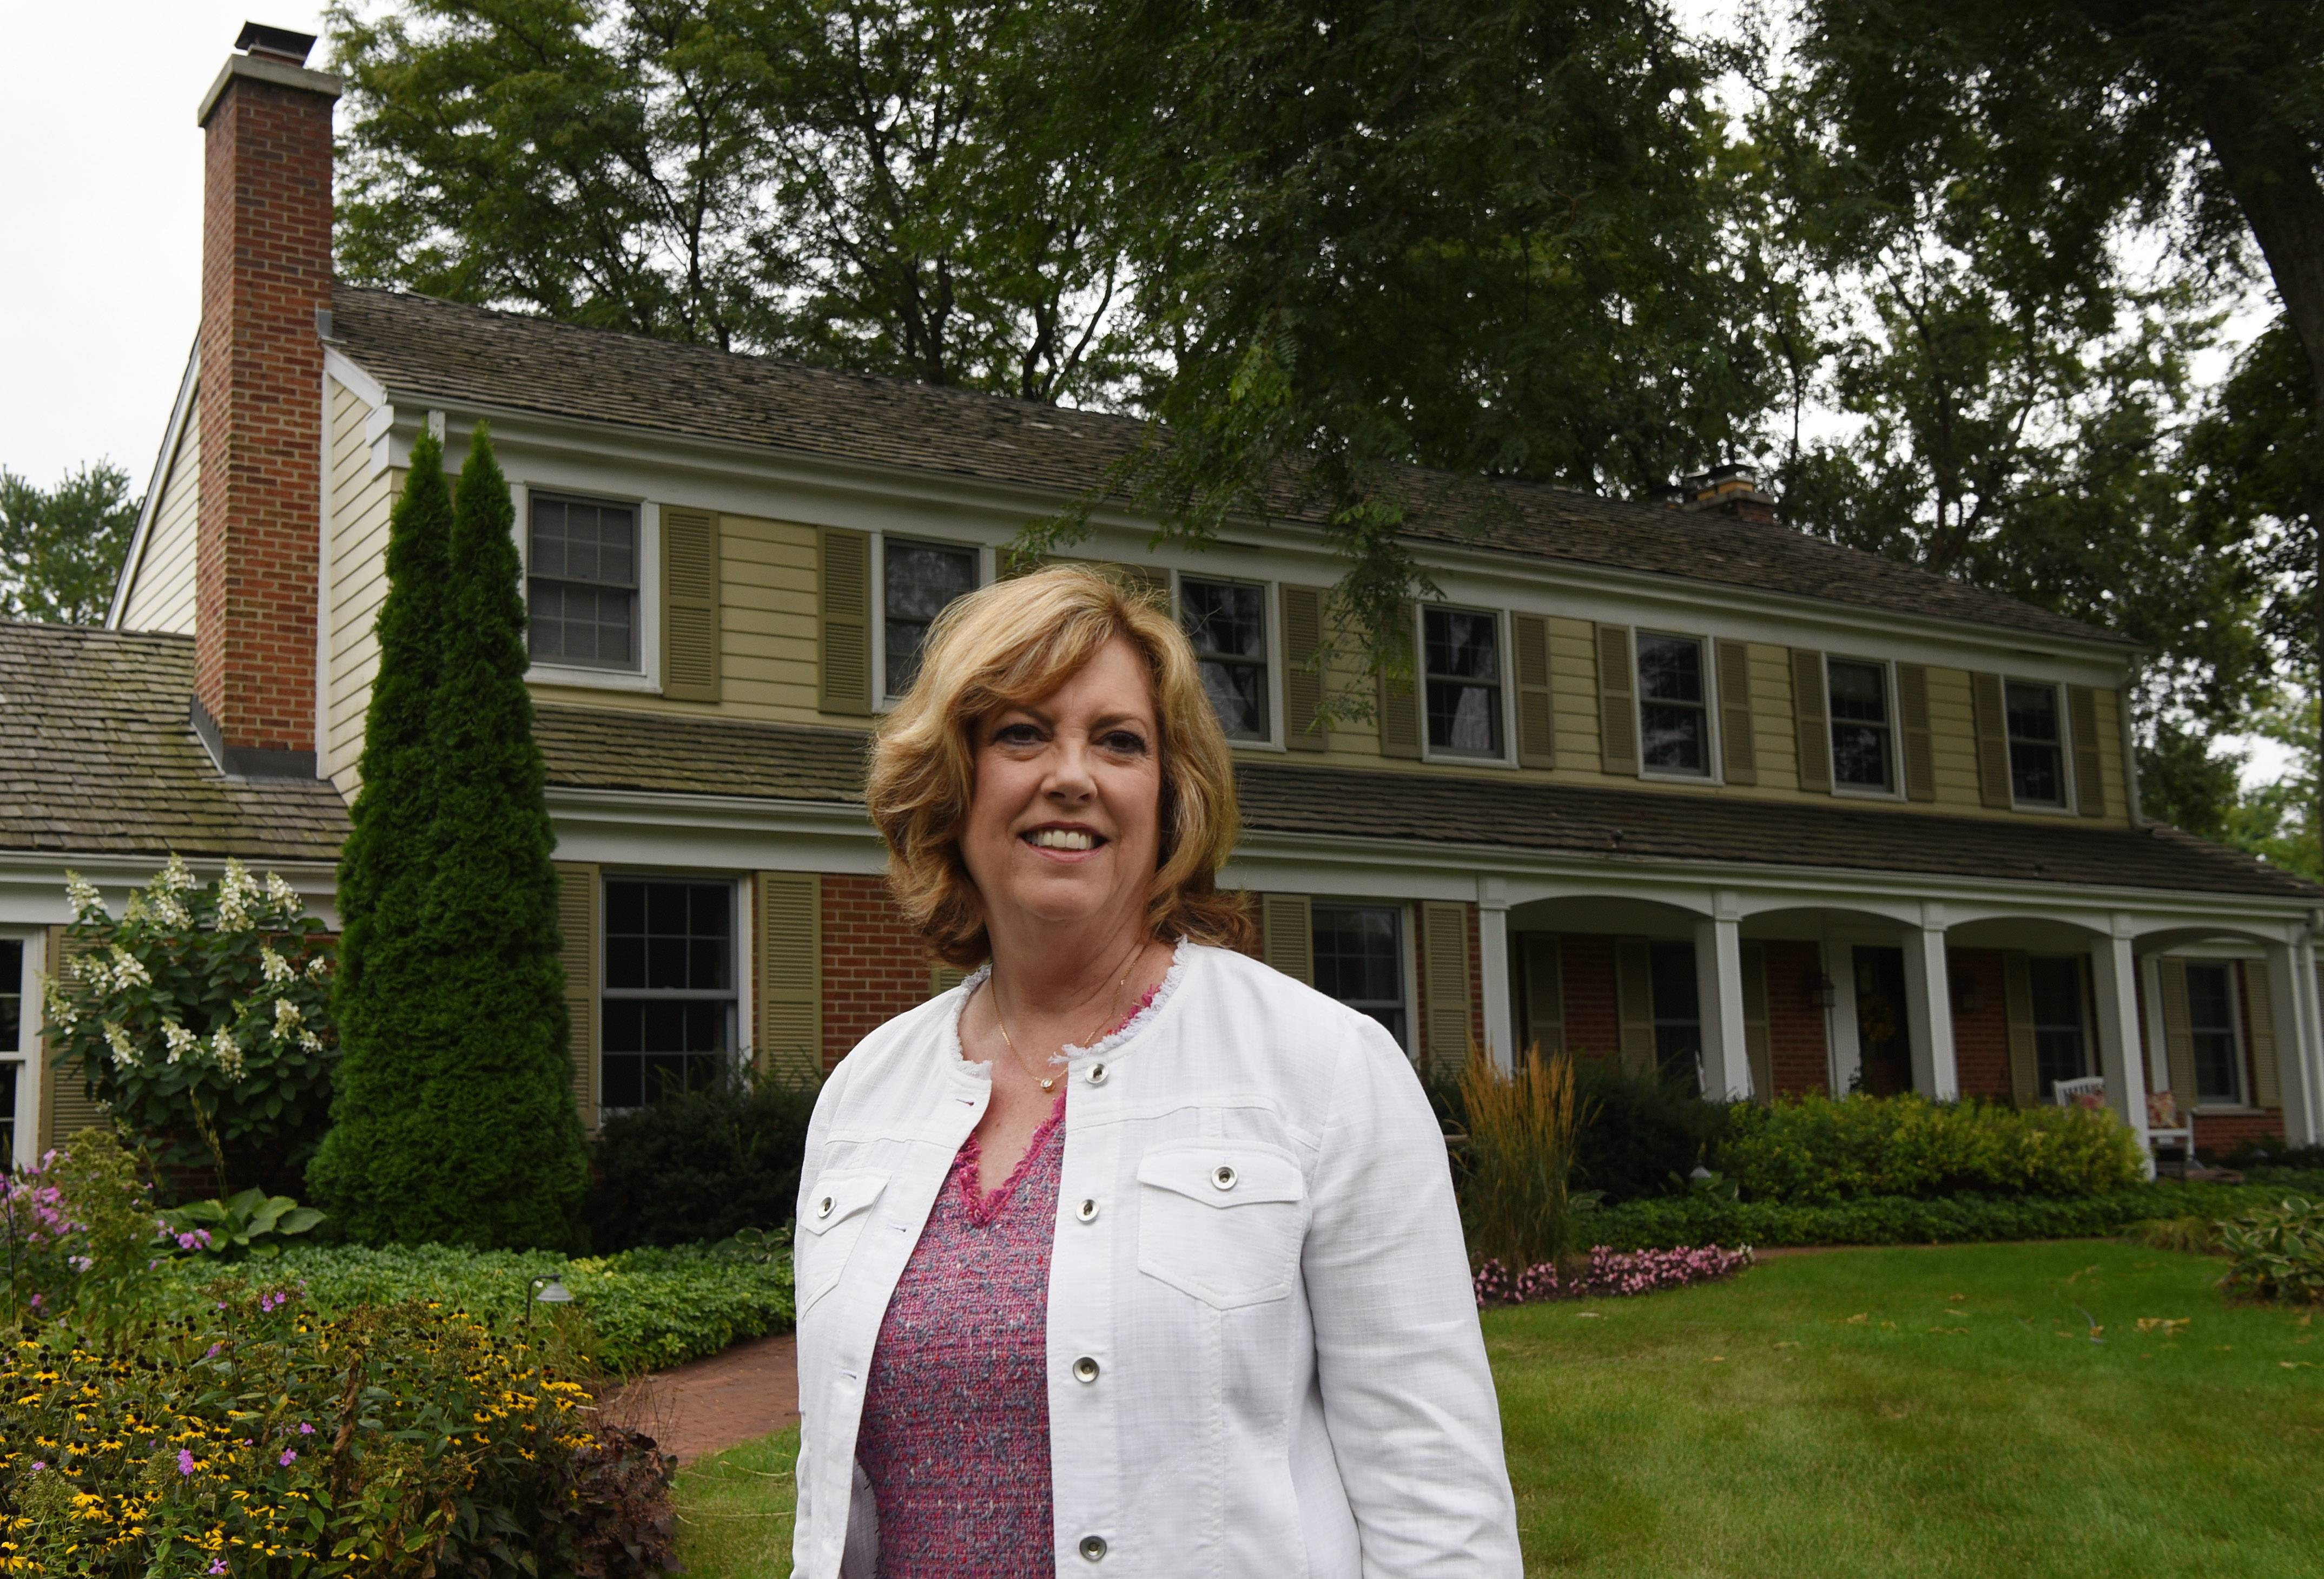 Today's buyer wants a move-in ready home, says Denise Curry of Baird & Warner, shown at one of her listings in Inverness.